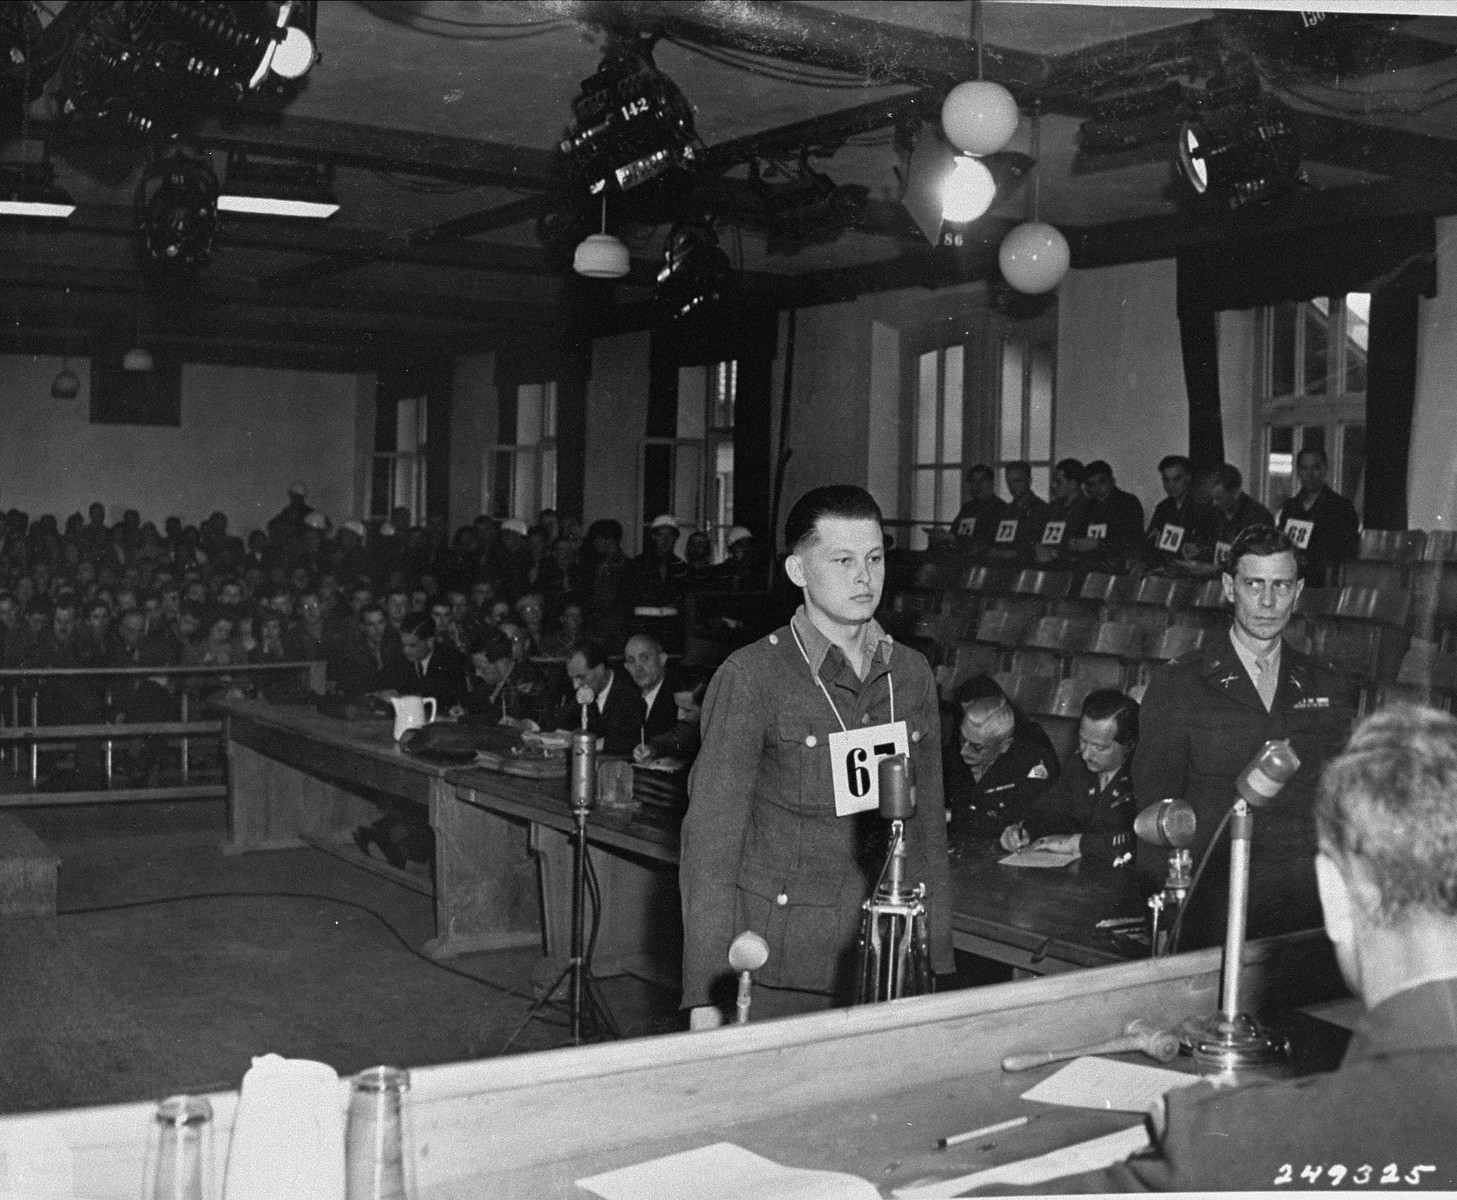 Former SS Lt. Heinz Tomhardt is sentenced to death by hanging by an American Military Tribunal for his part in the Malmedy massacre.